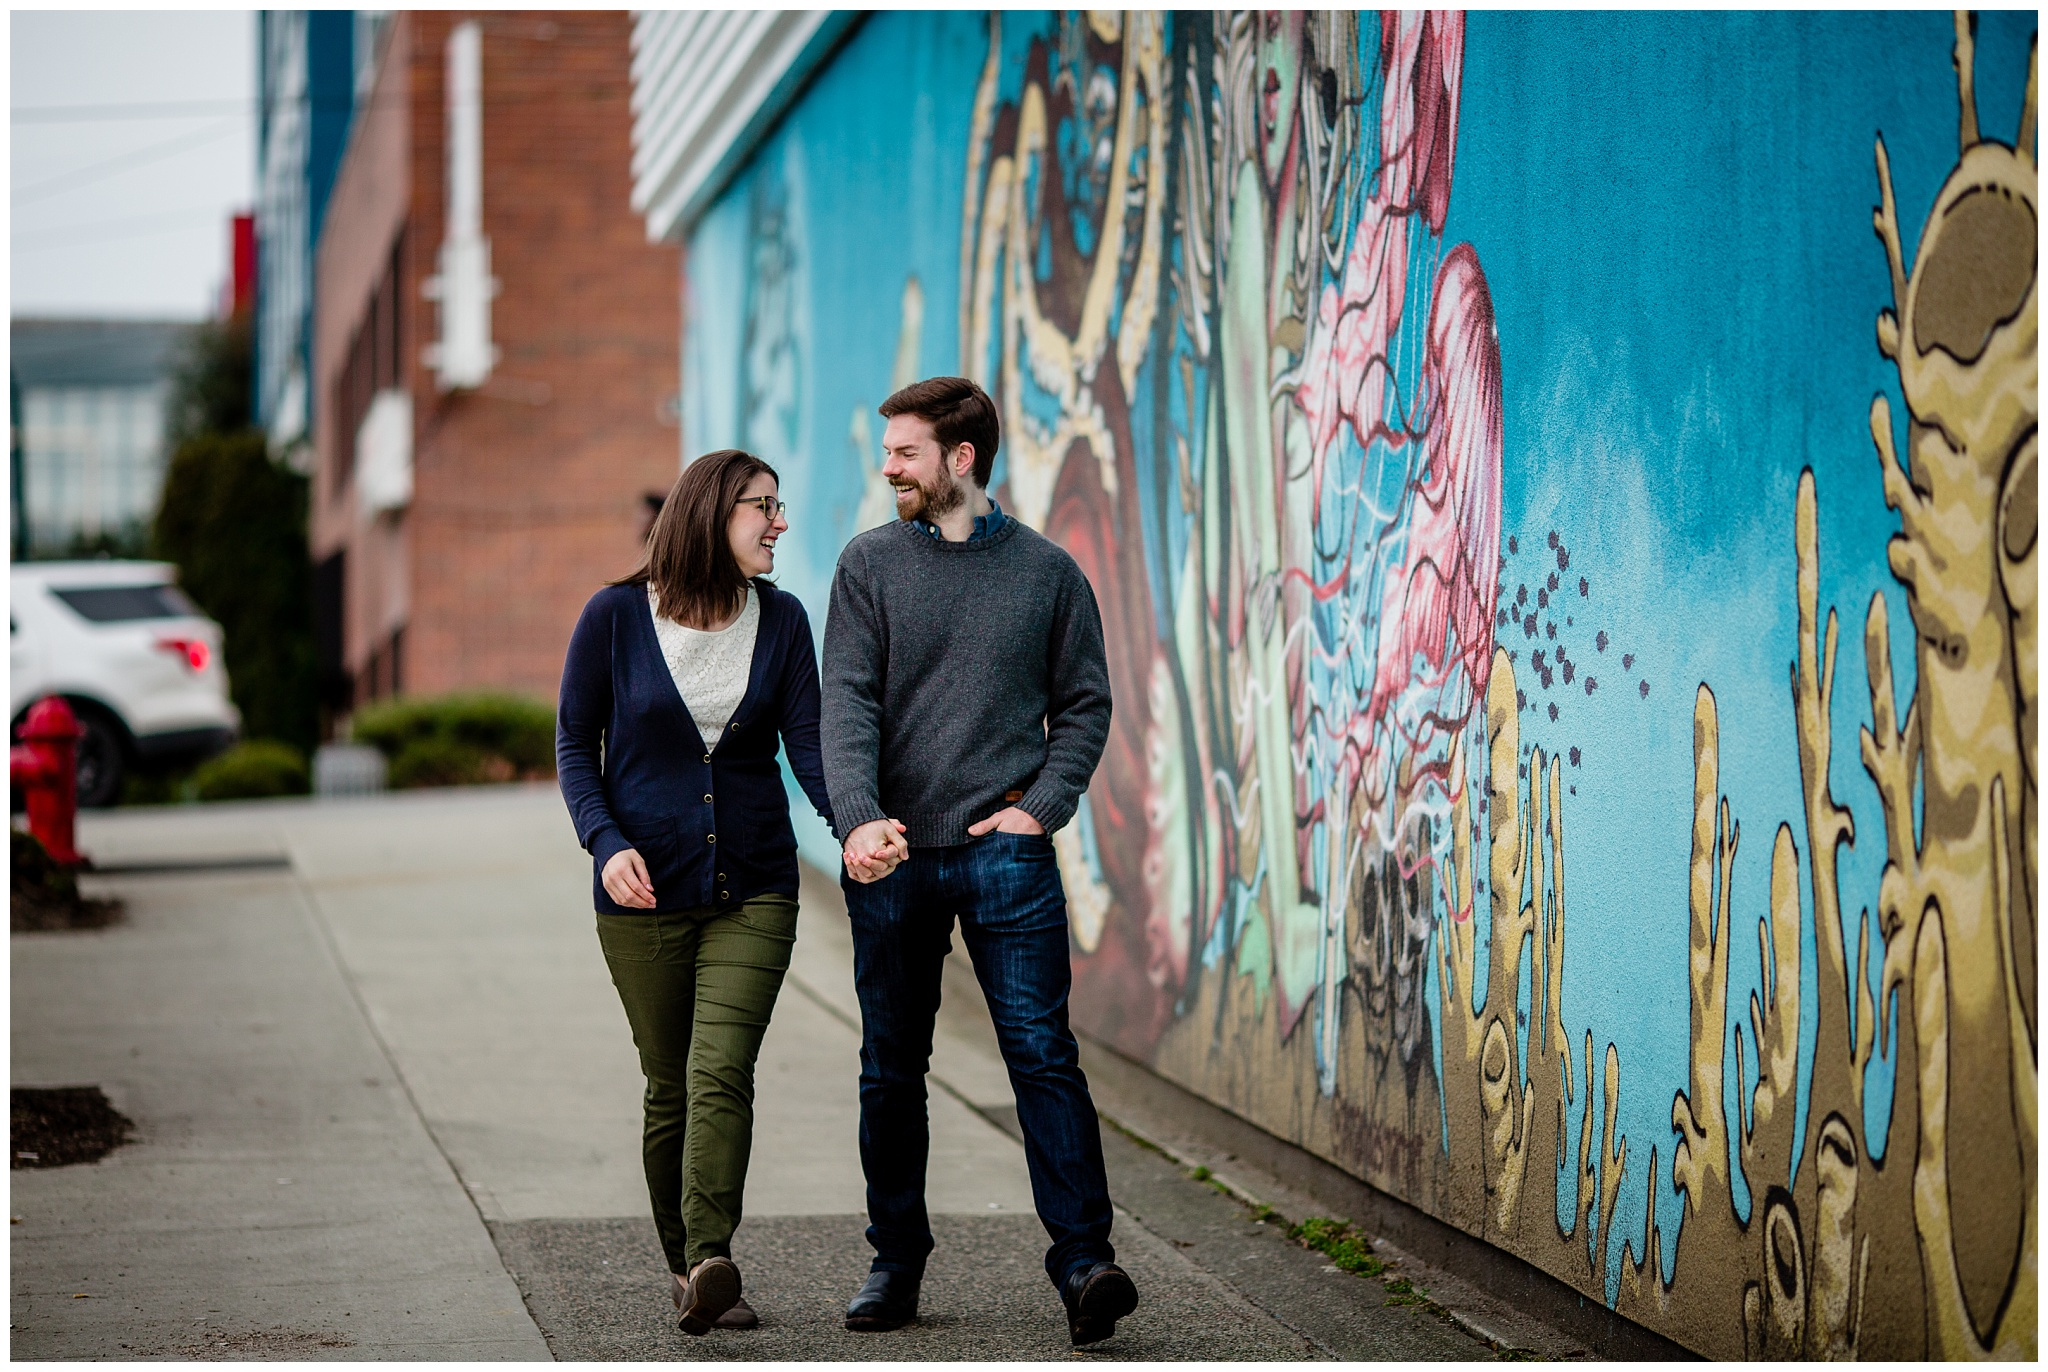 Olympic Village Mural Walk Engagement Urban Fun Casual Photography Mimsical Photography 2019_0015.jpg